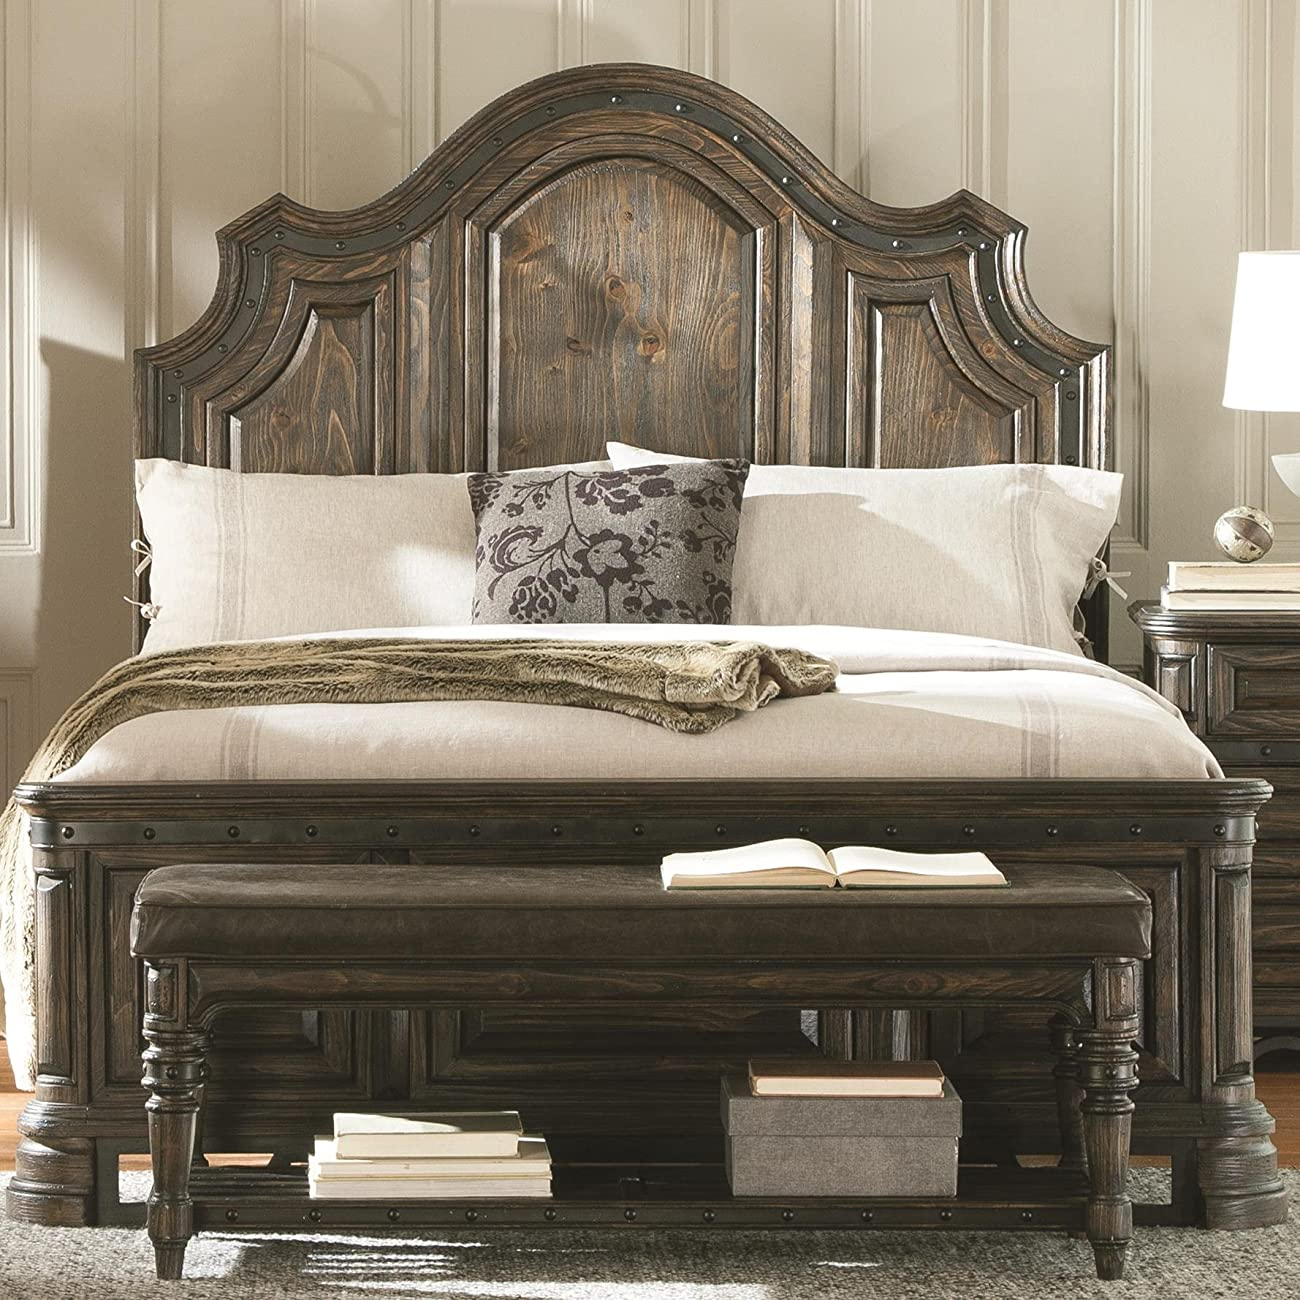 Coaster Carlsbad King Panel Bed in Vintage Espresso 0